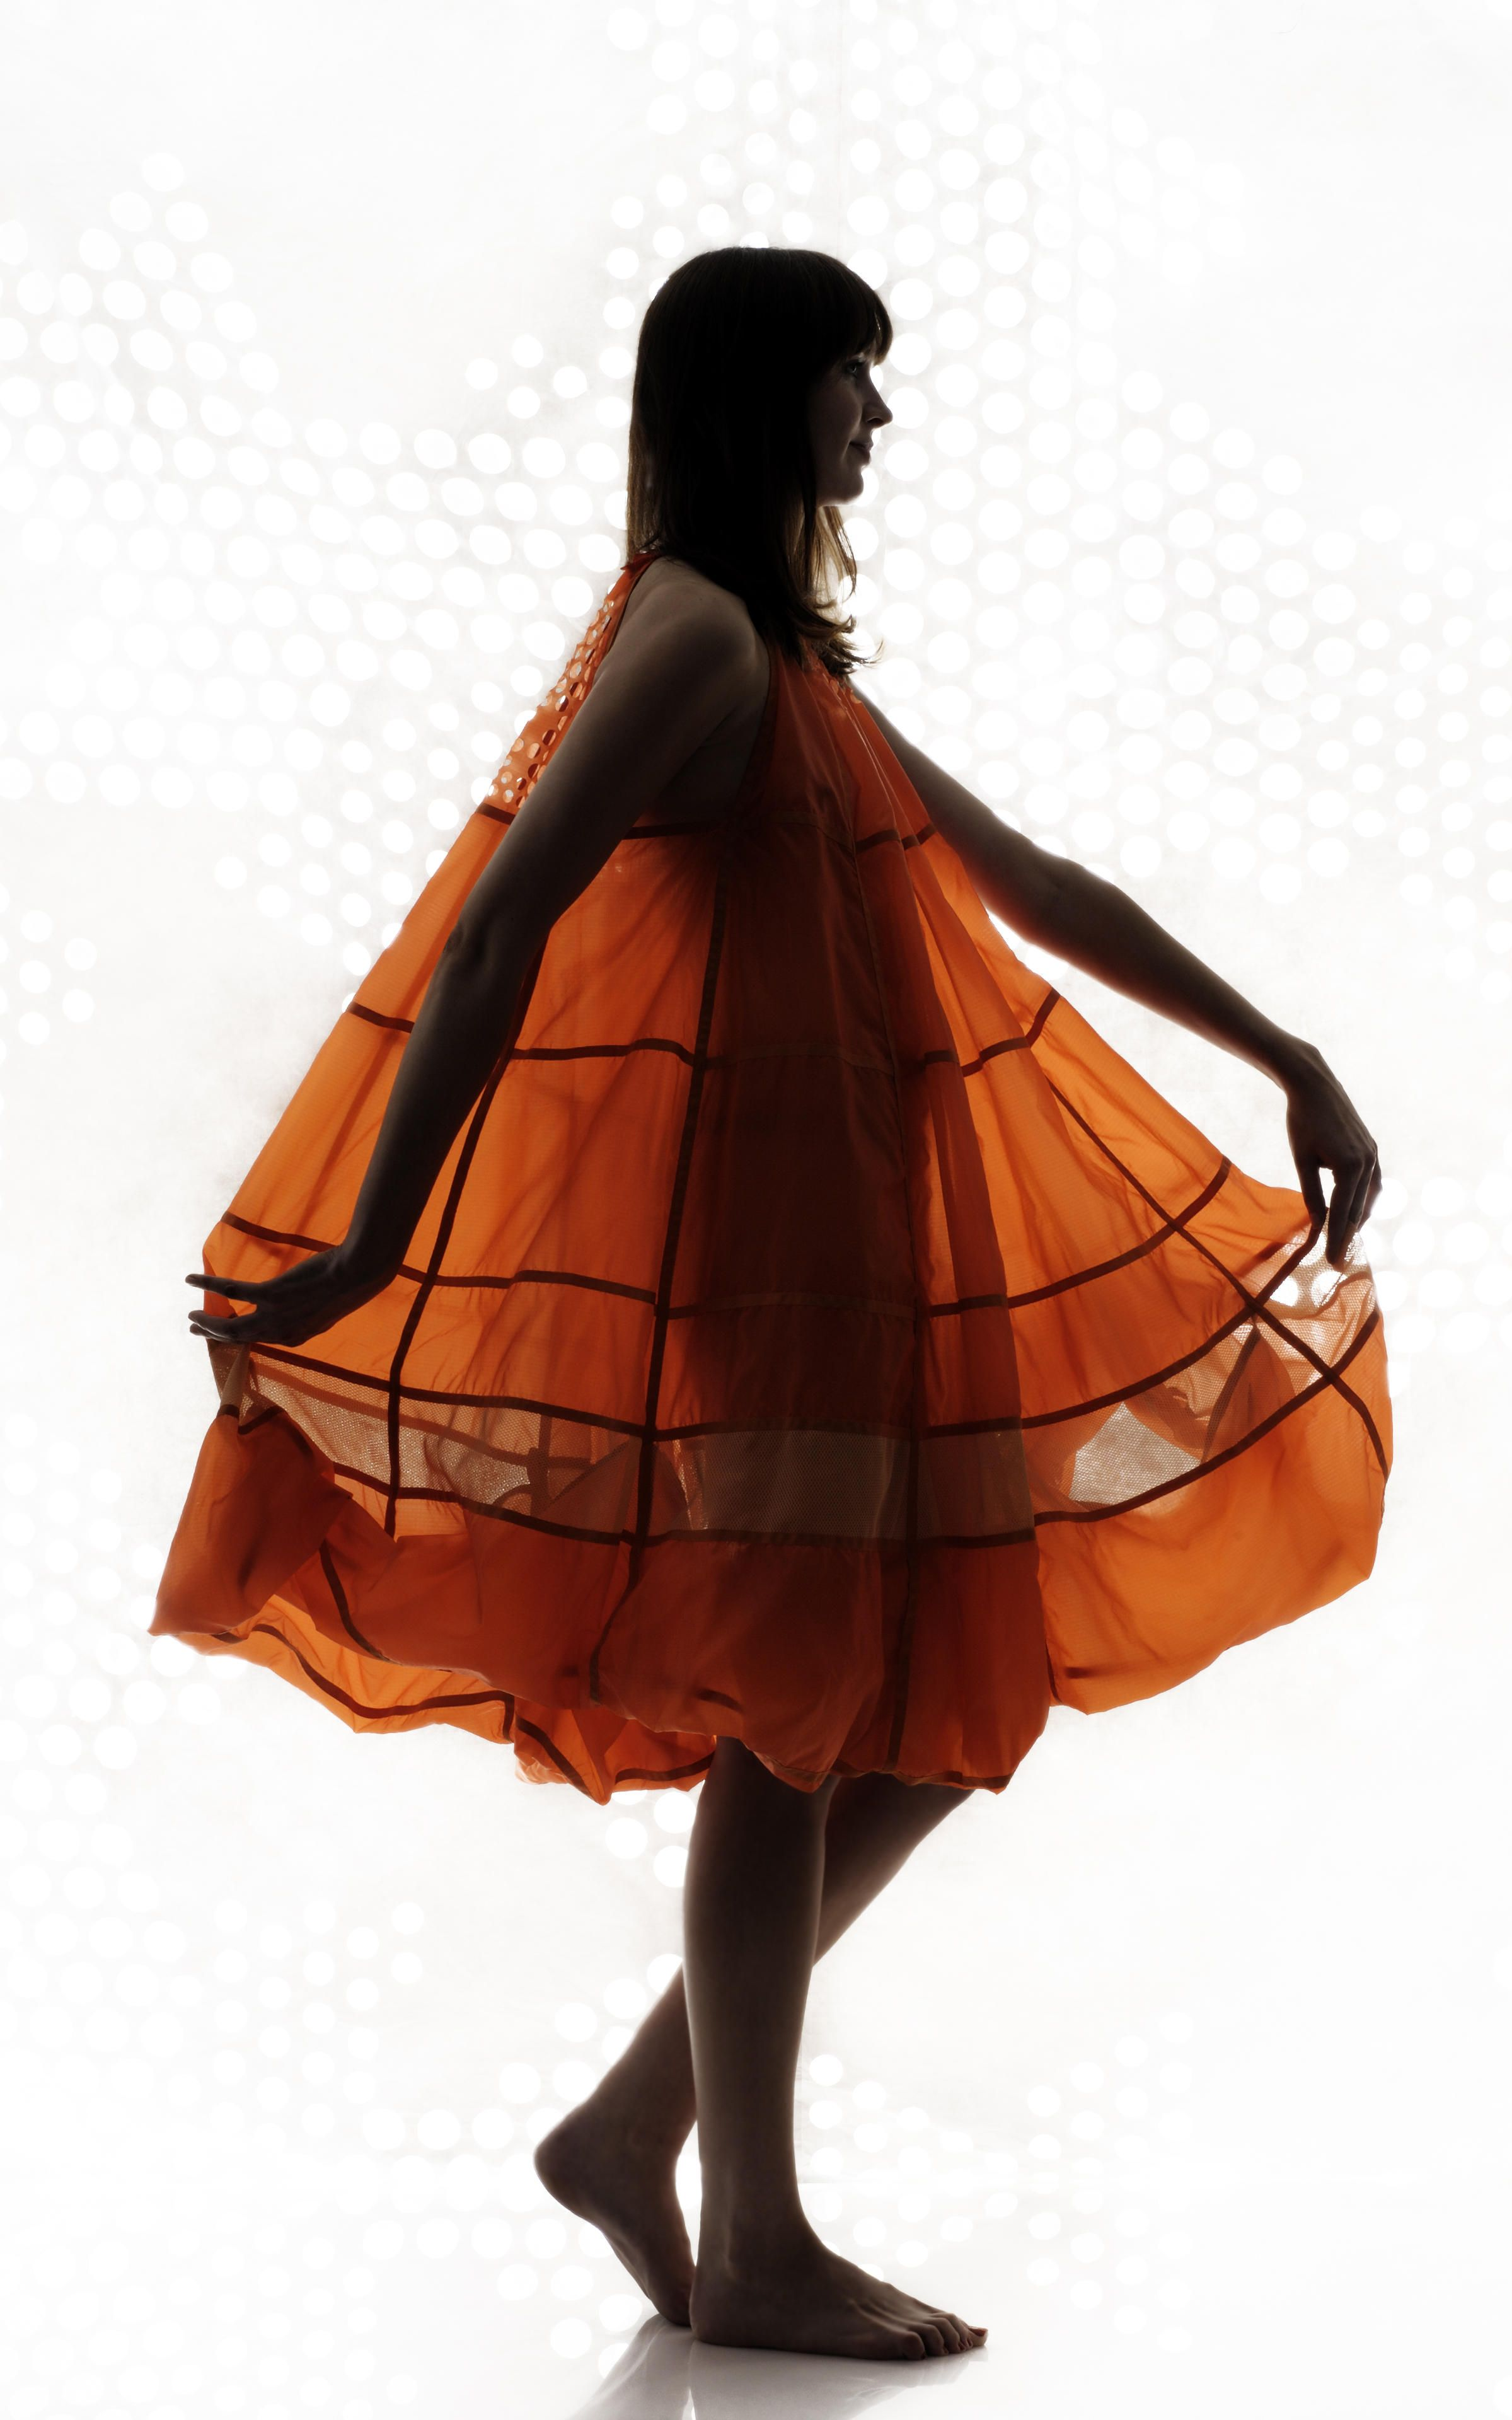 Dress made from a recycled #parachute by designer Christopher Raeburn. #upcycle #ecofashion